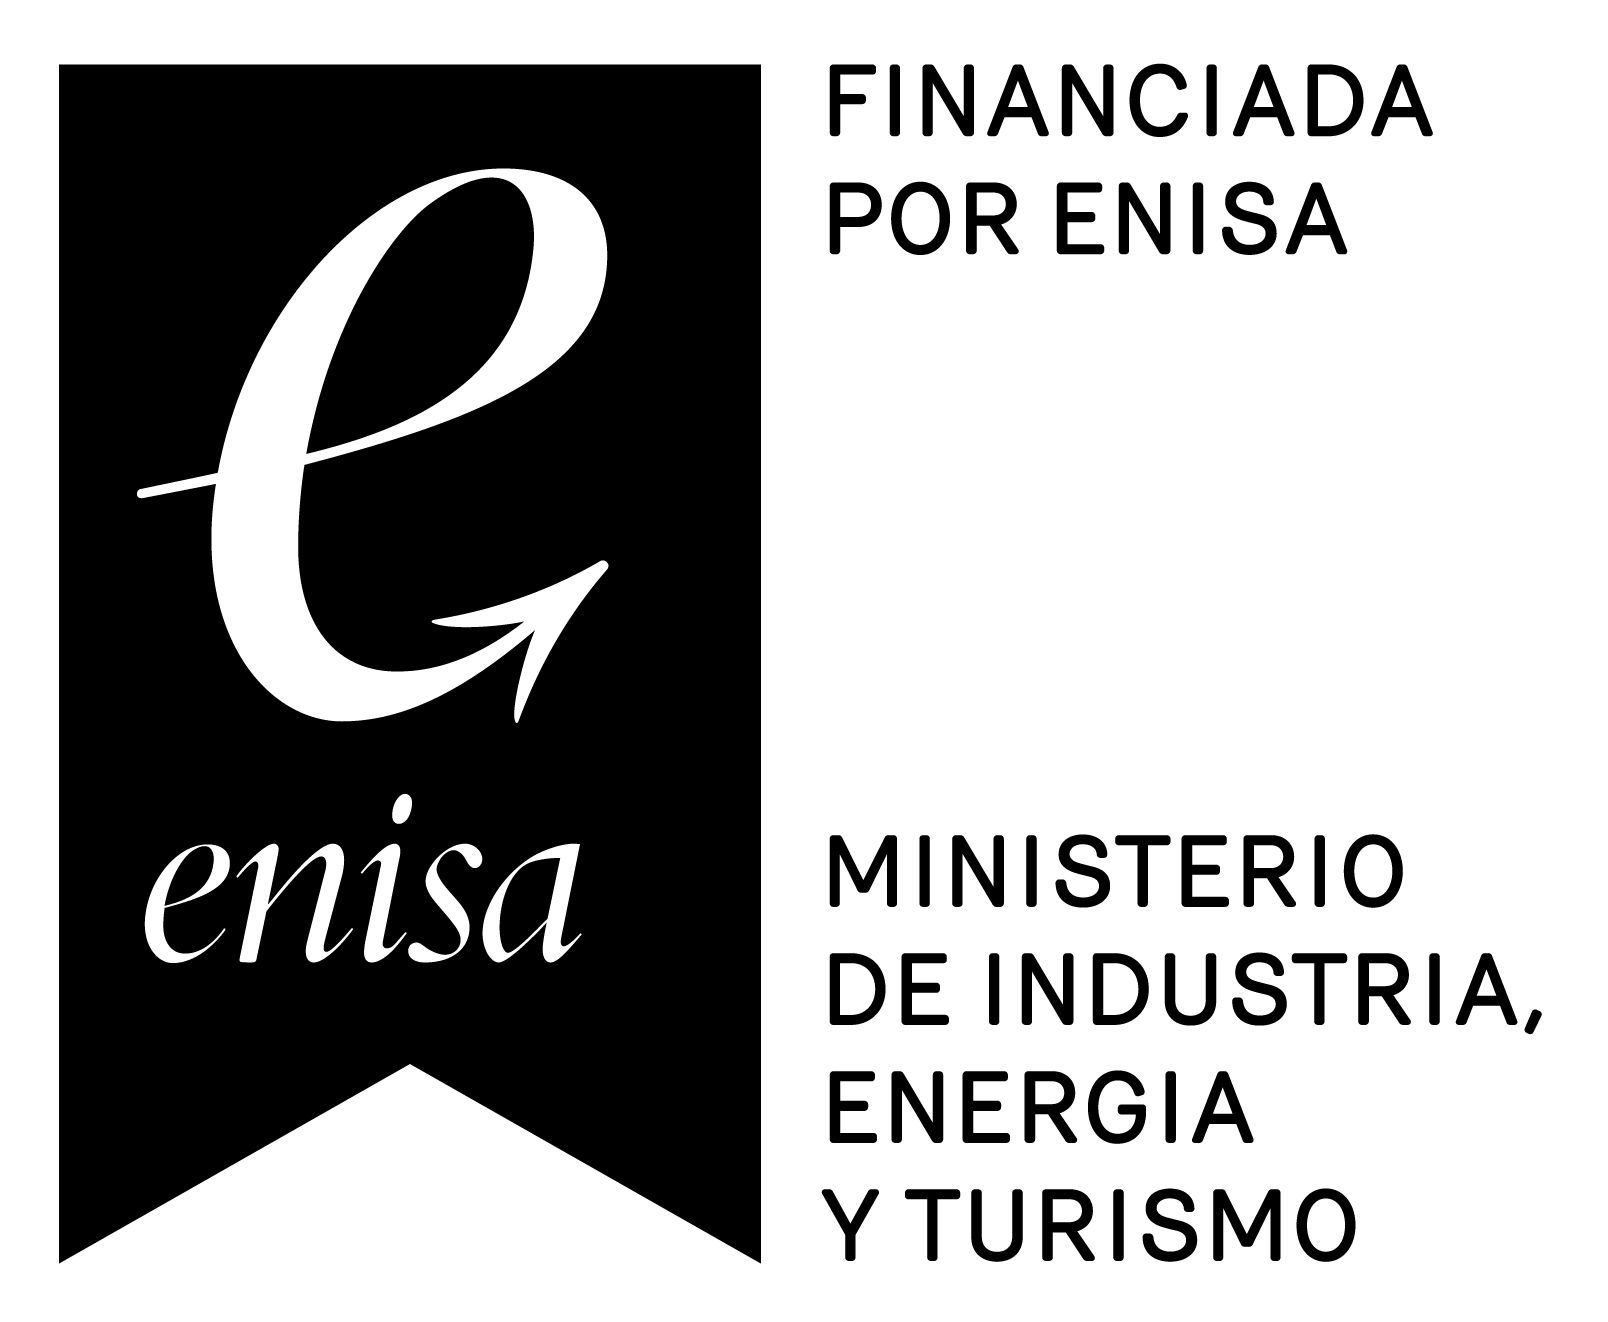 Proyecto co-financiado por ENISA